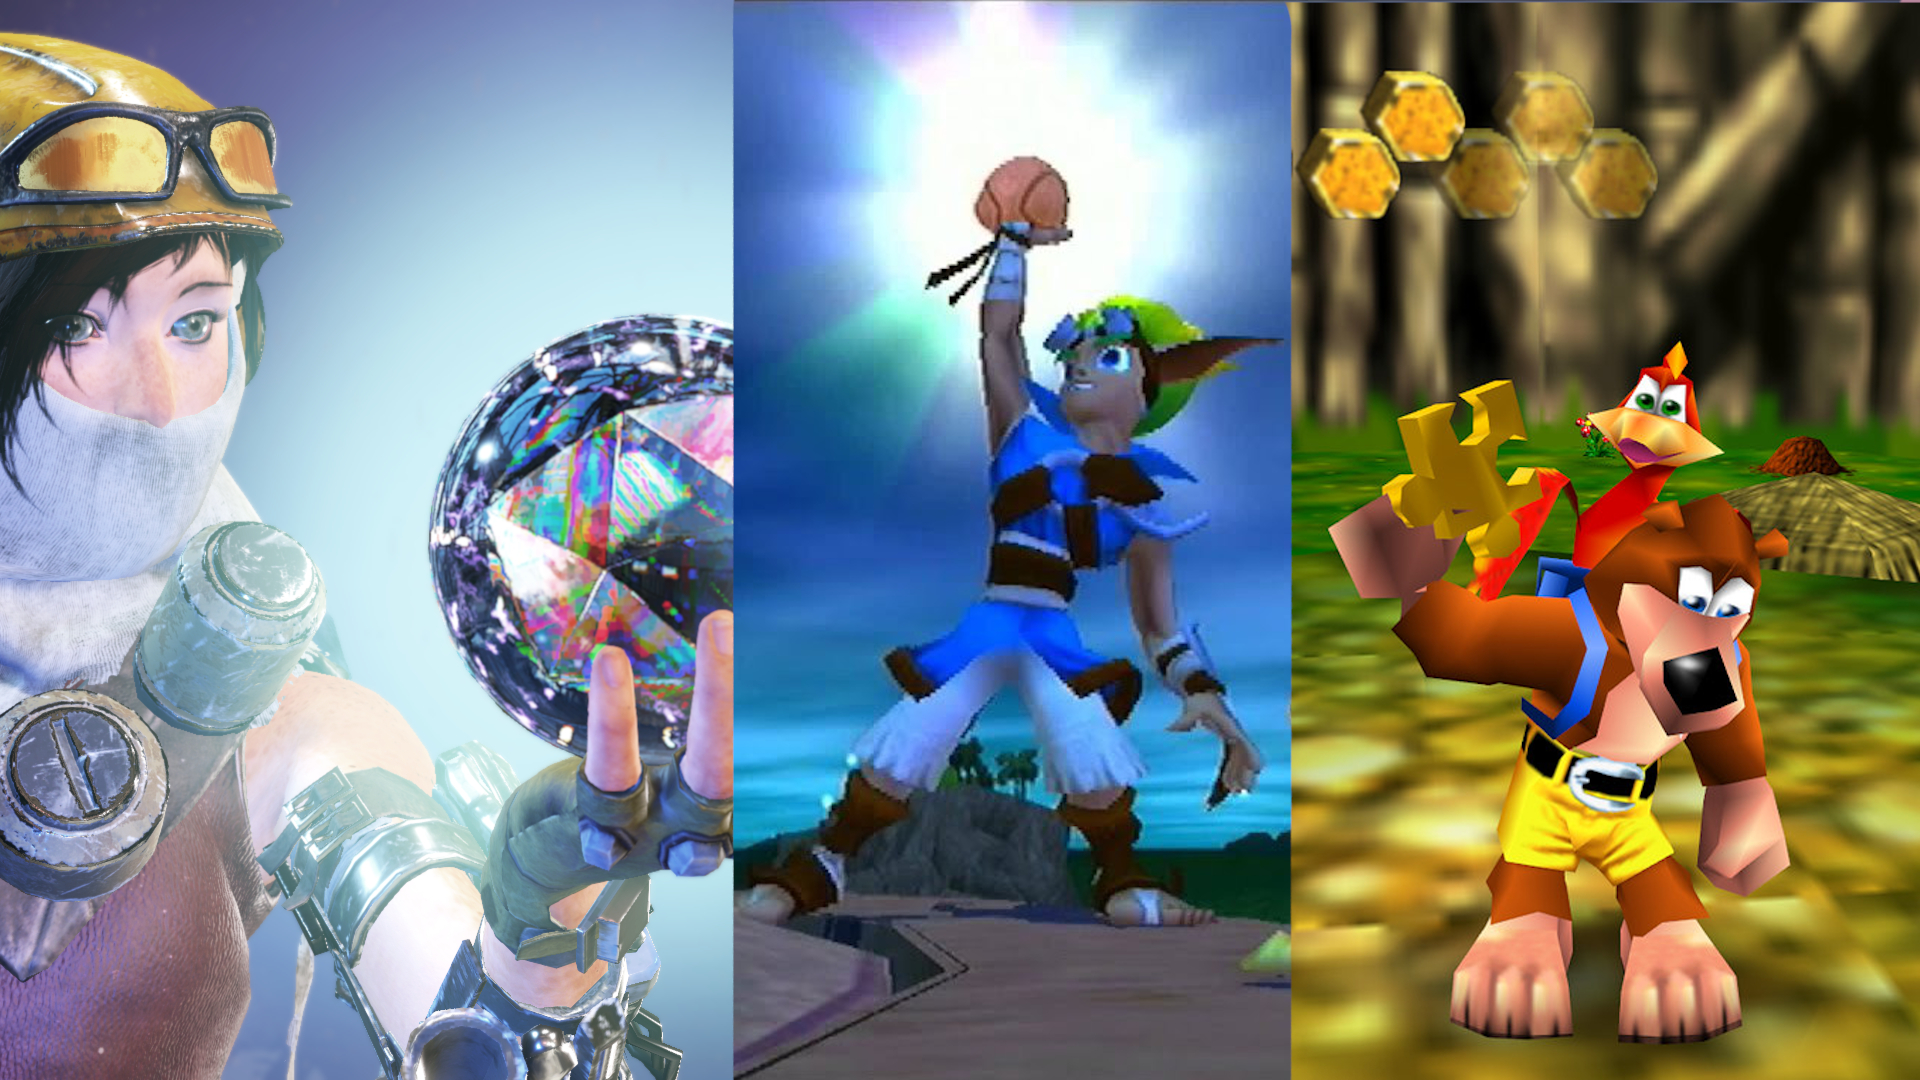 Image With Each Third having the protagonist of a different game. From left to Right: Joule from ReCore, Jak from Jak and Daxter, and Banjo from Banjo-Kazooie